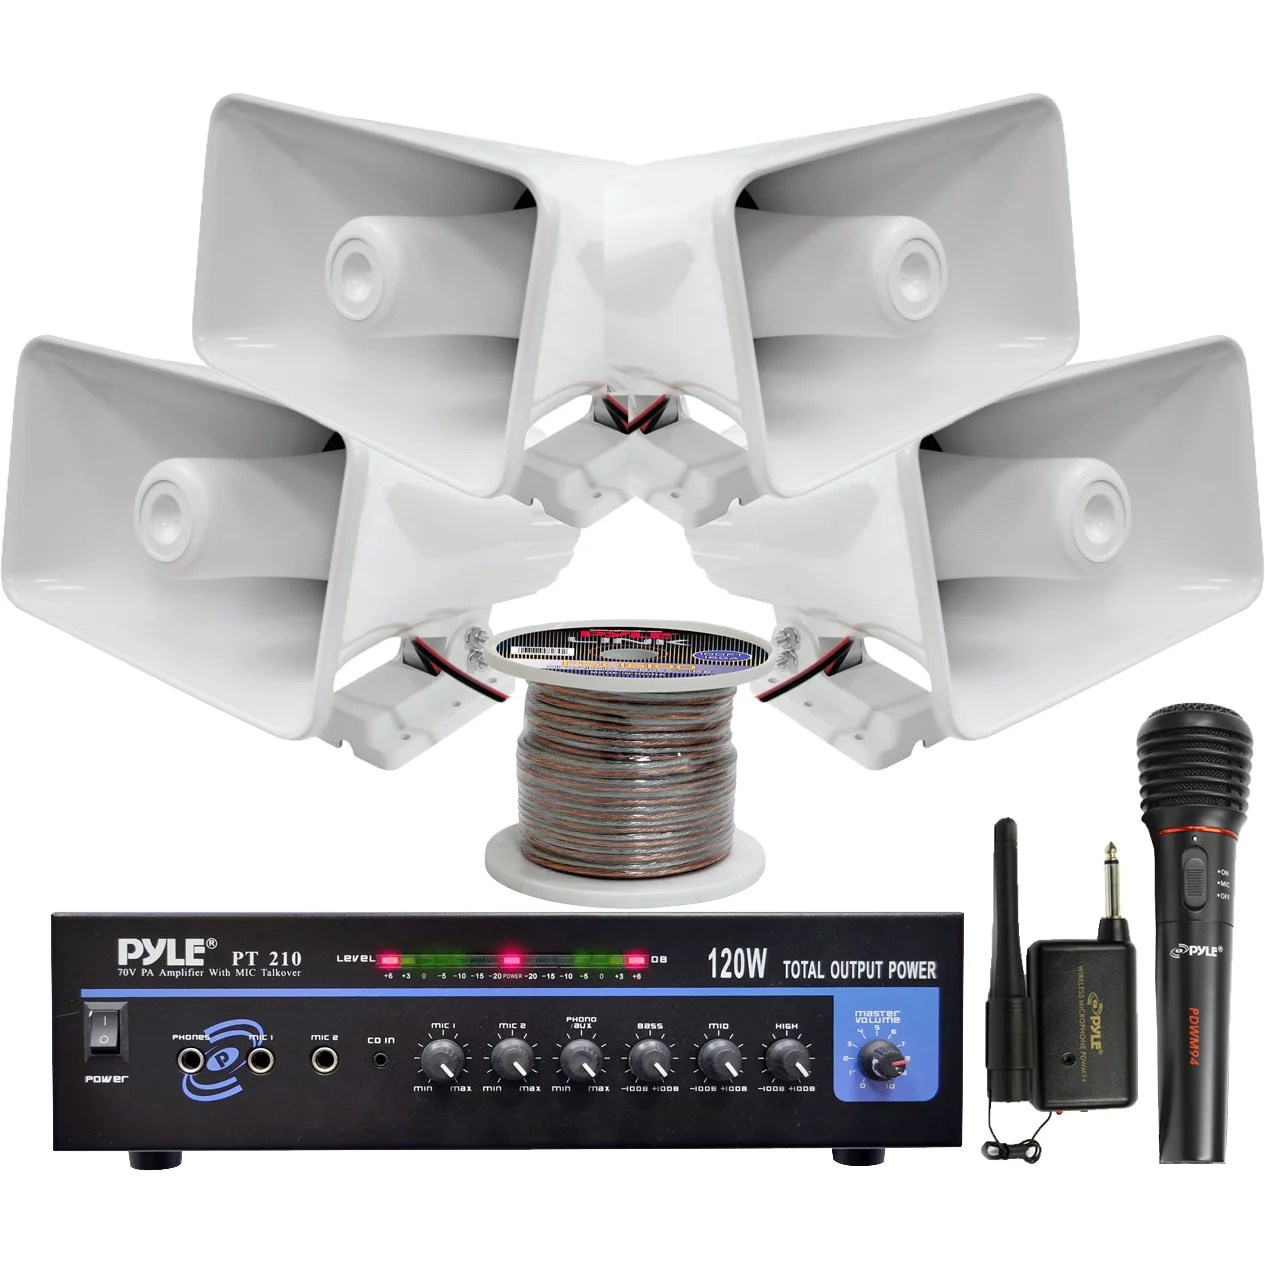 hight resolution of shop pyle kthsp330 120w pa amplifier system with 4 horn speakers wireless microphone speaker wire free shipping today overstock com 10119248